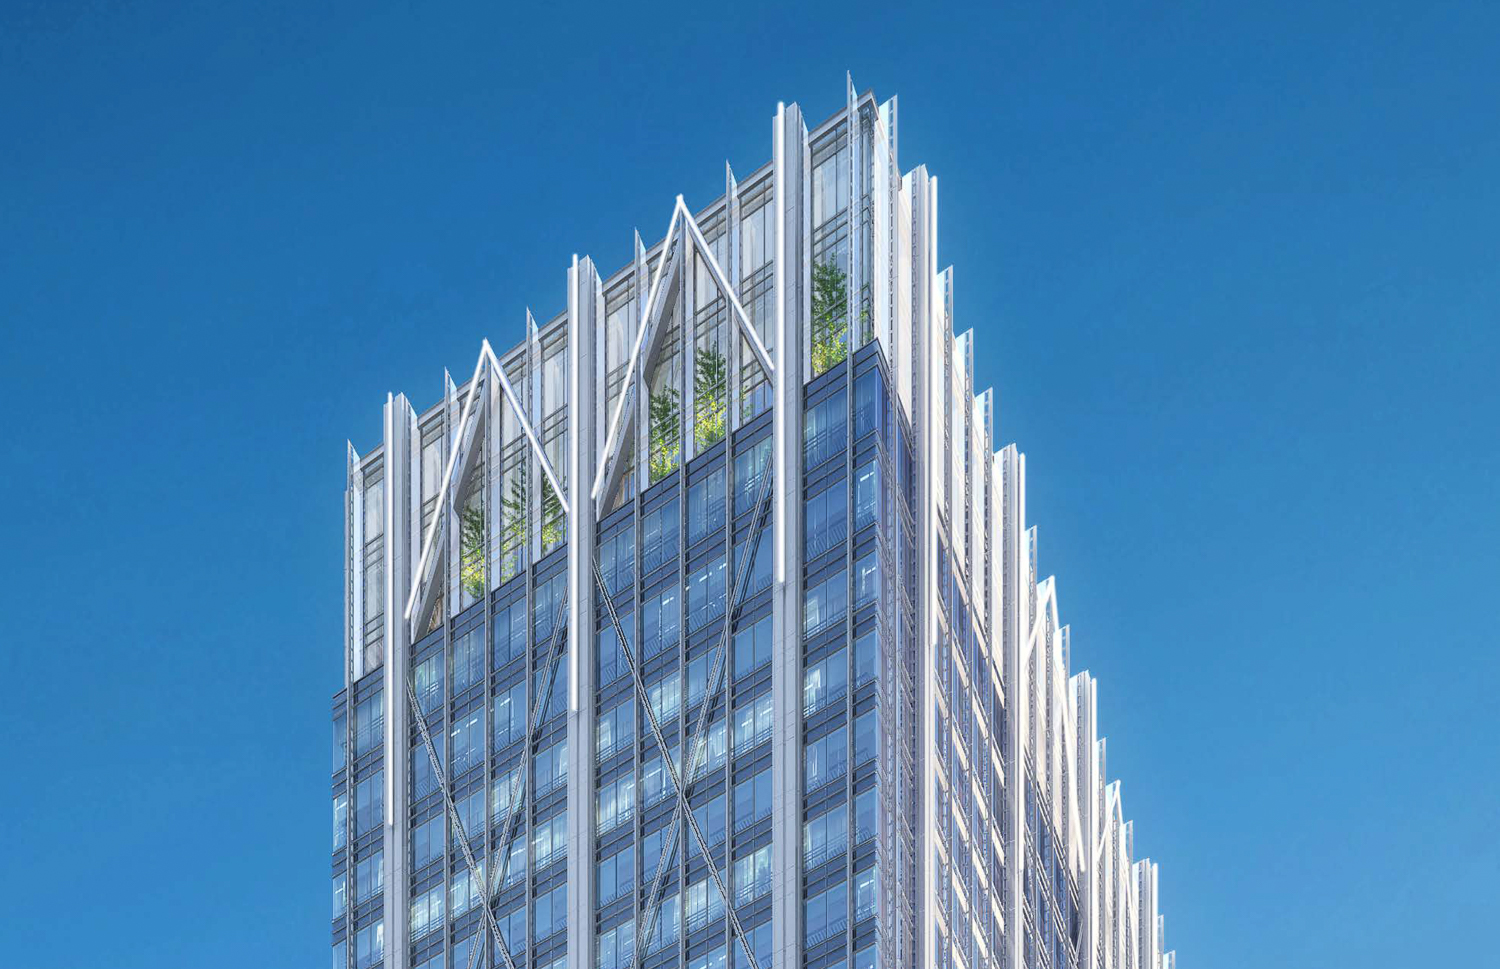 415 20th Street crown and observation deck at night, rendering from Hines